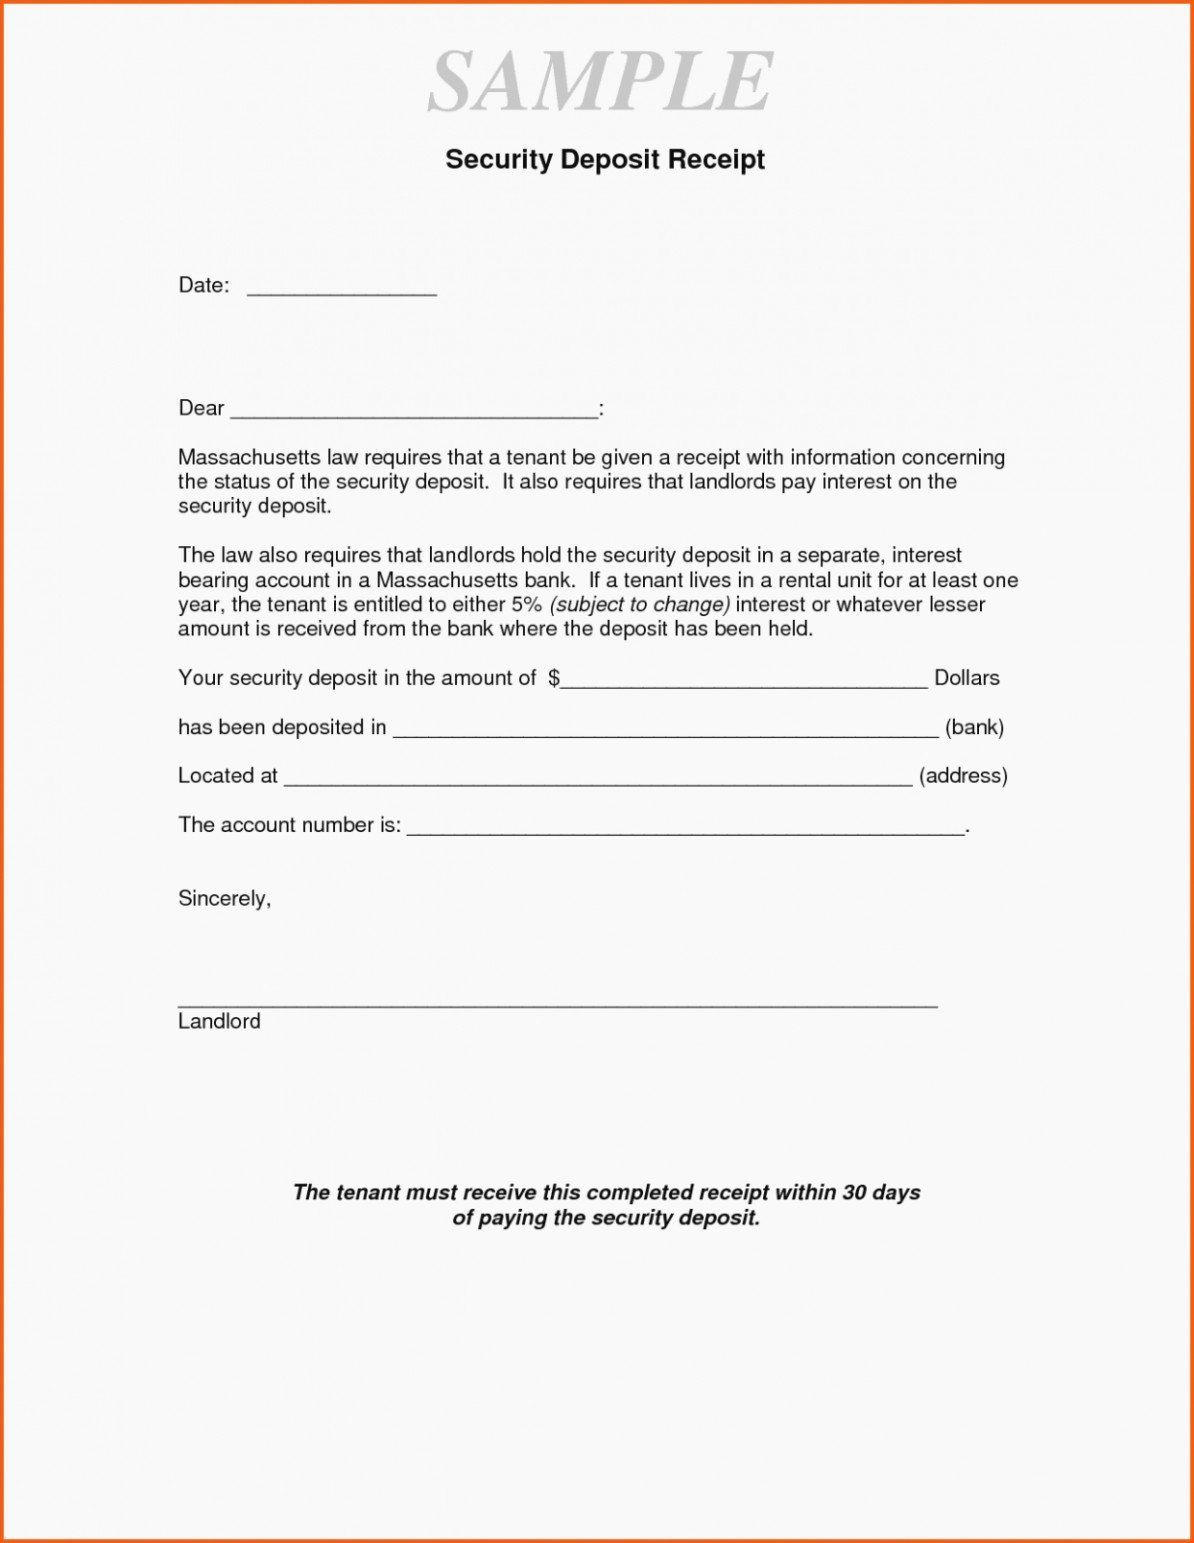 Security Deposit Return Receipt Awesome Security Deposit Letter format Climatejourney